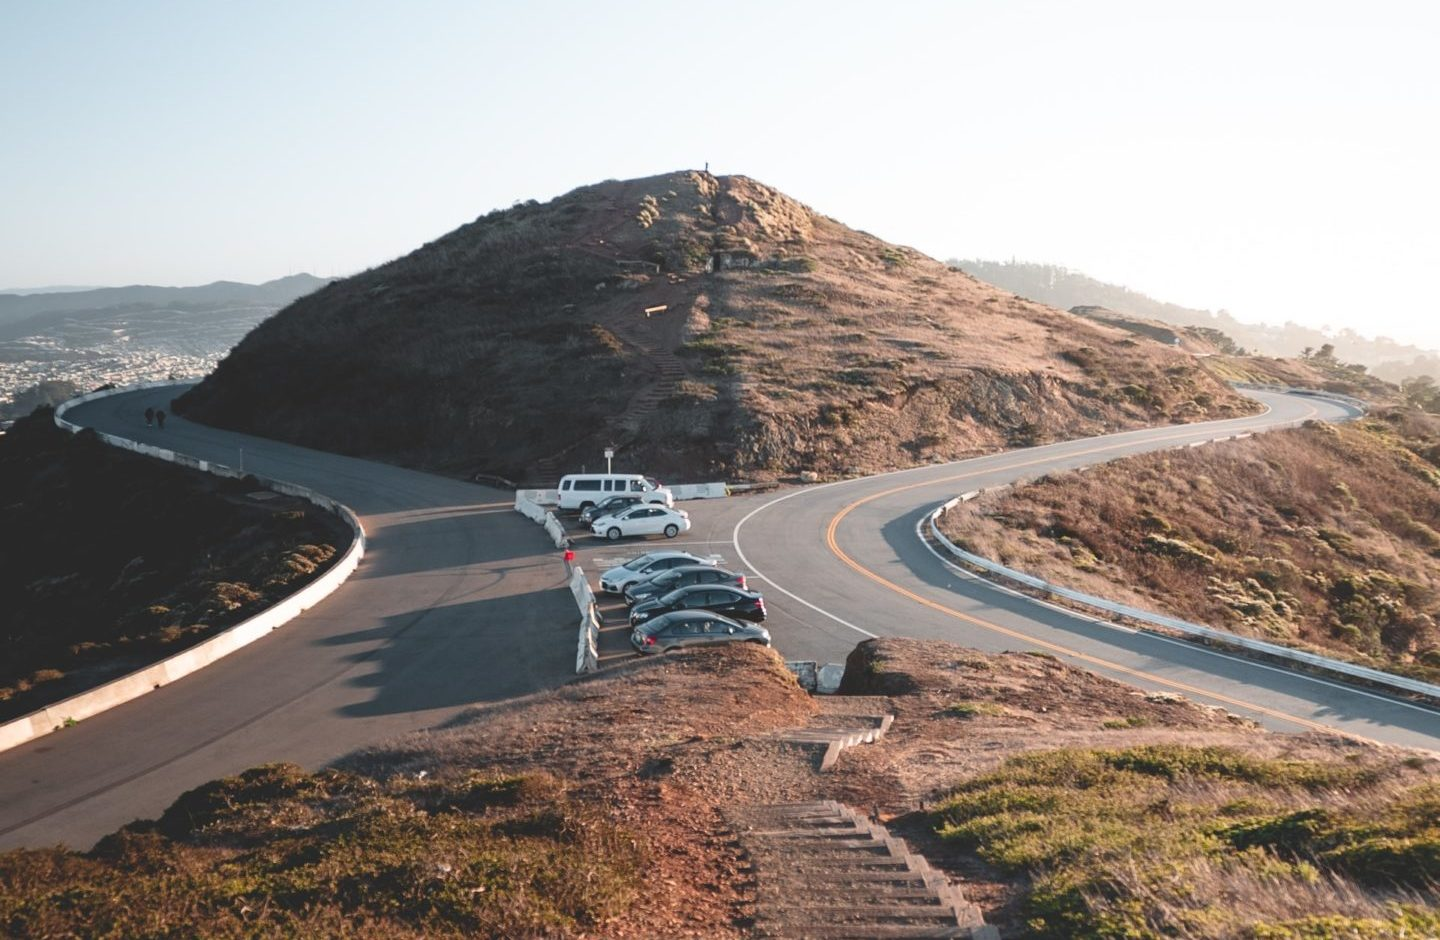 Cars parked on Twin Peaks in San Francisco